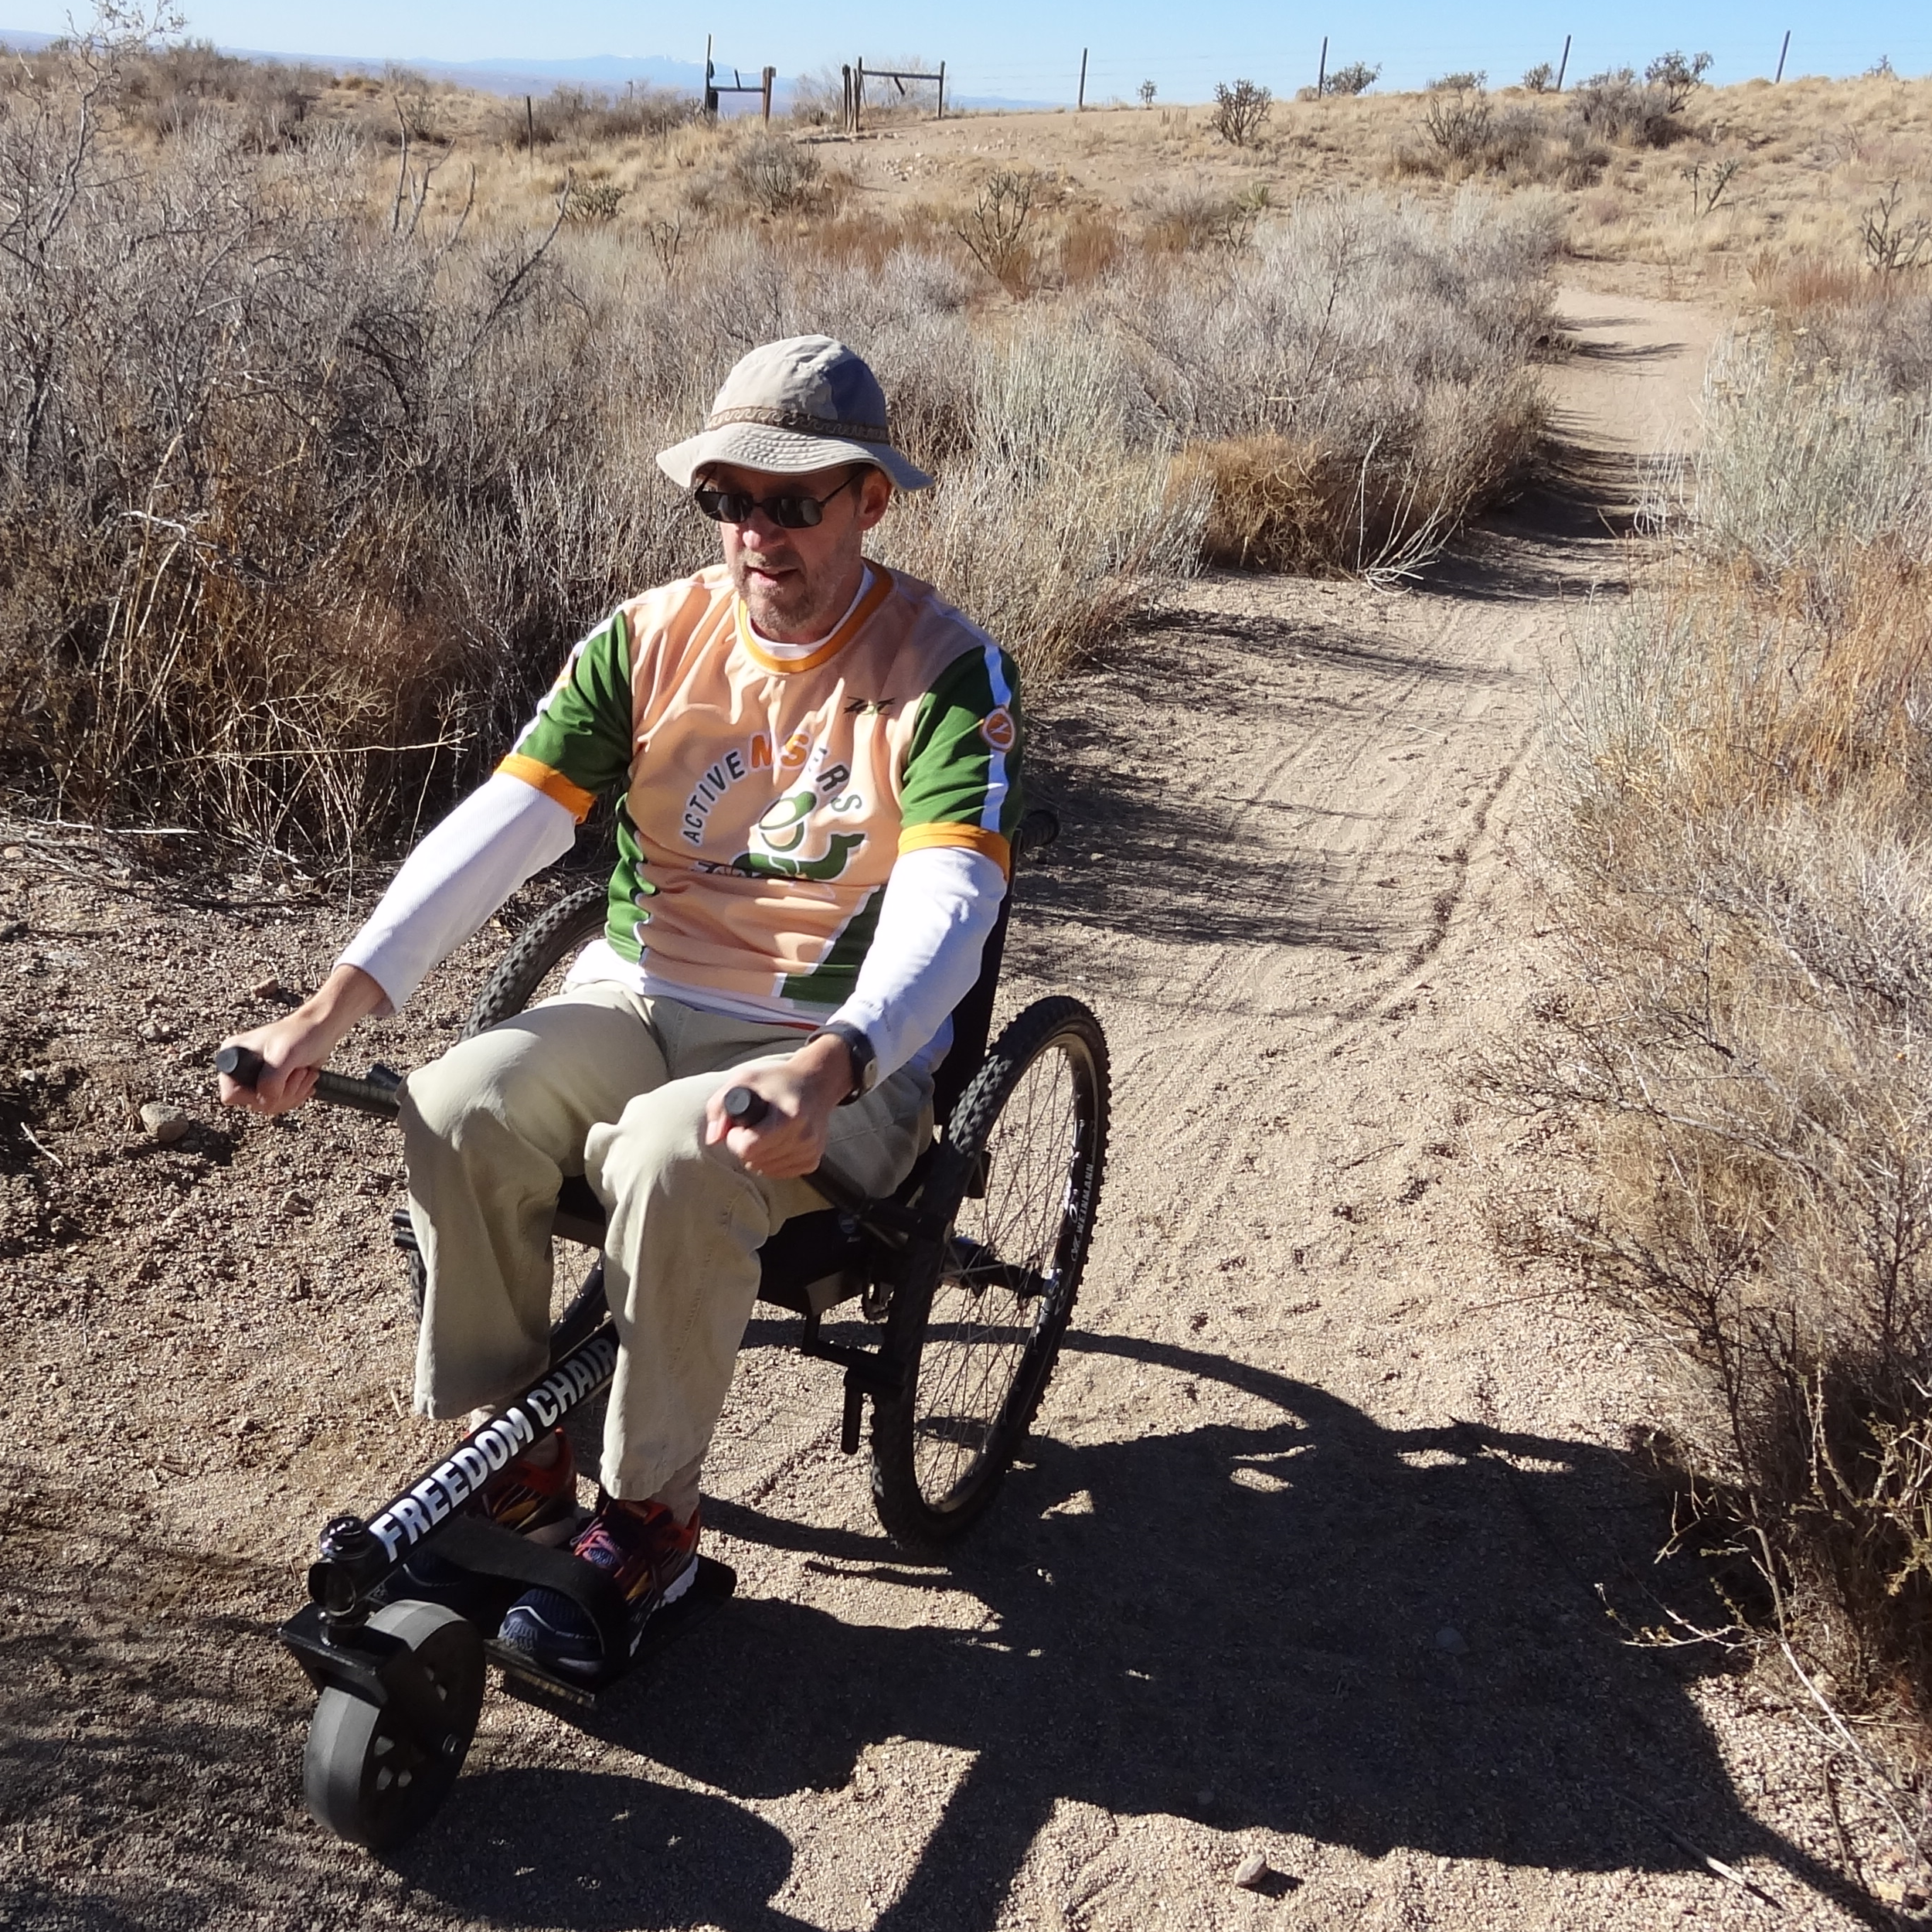 """The GRIT Freedom Chair eclipsed expectations, and will take you to places on three wheels you never thought possible. Its design is elegantly simple—and brilliant."" Read more from Dave and his experience with the Freedom Chair on his site,    ActiveMSers.org   ."